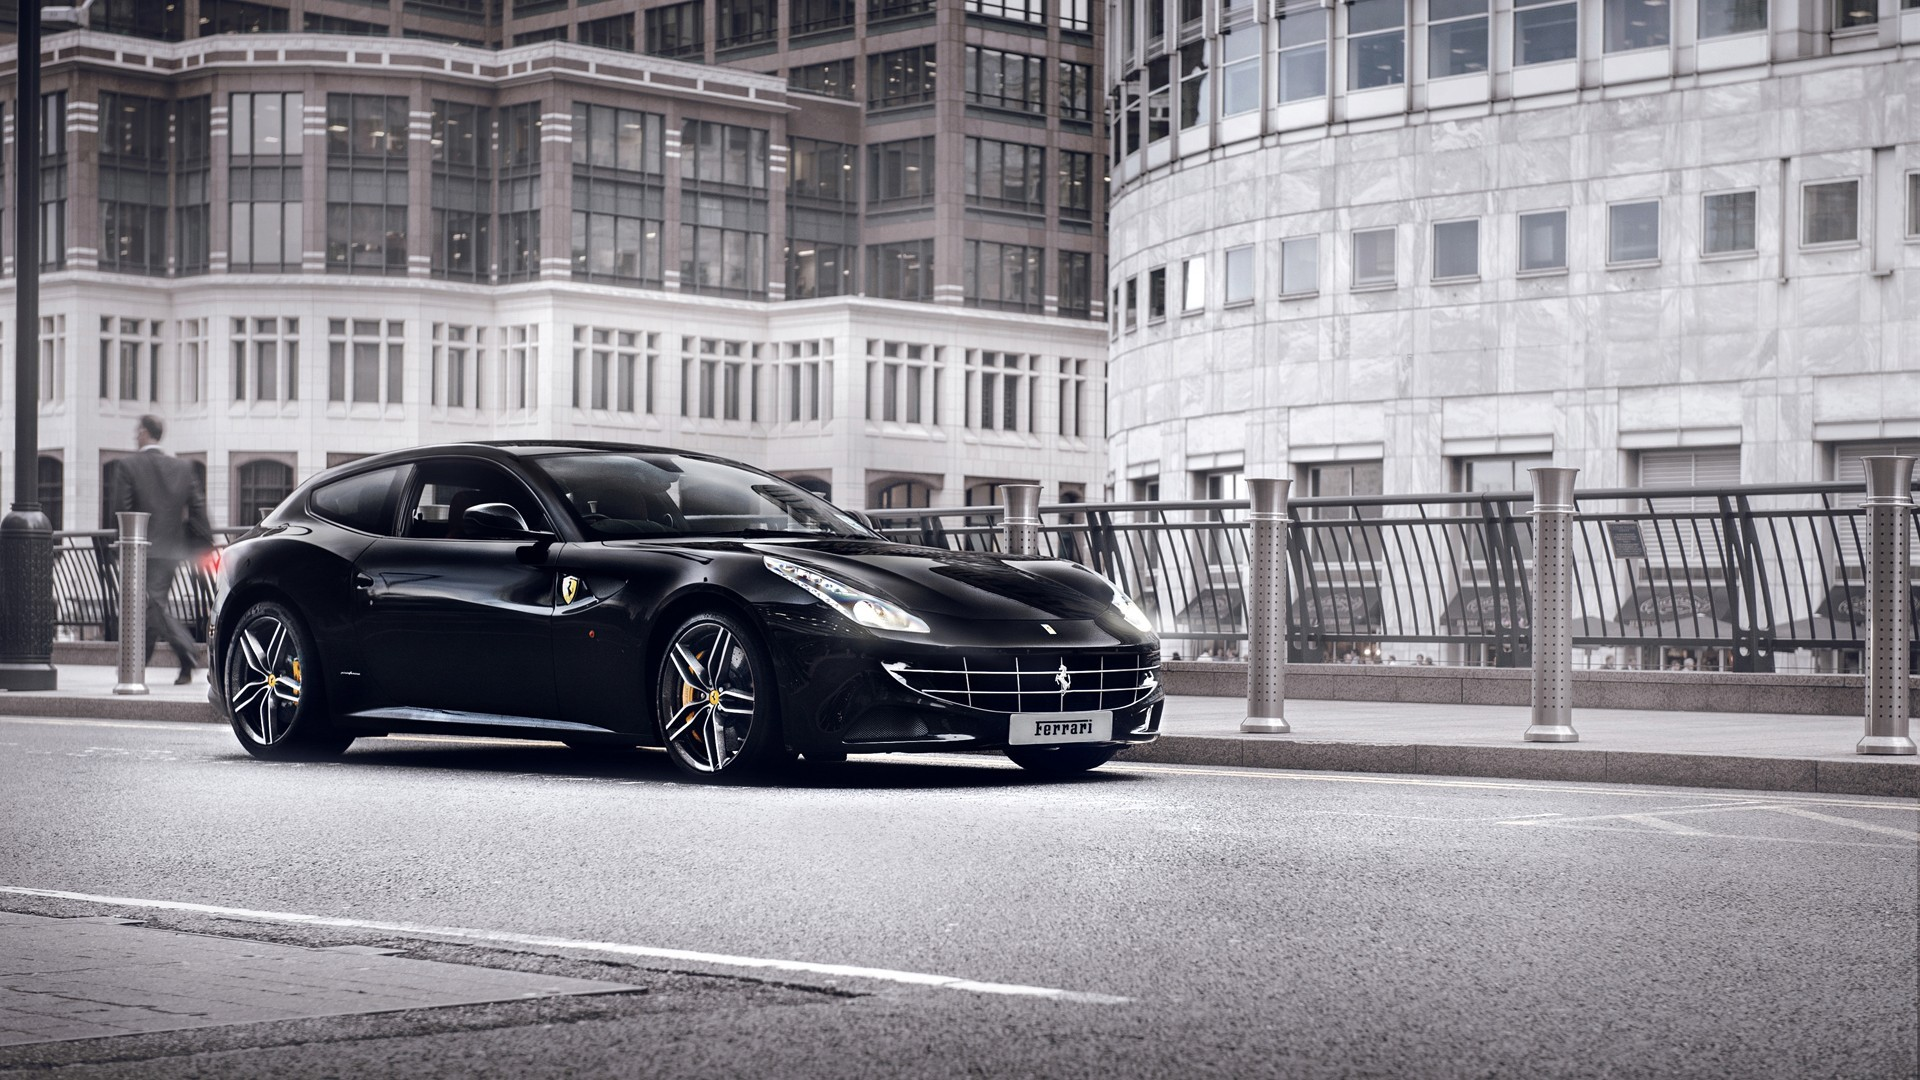 1920x1080 - Ferrari FF Wallpapers 20